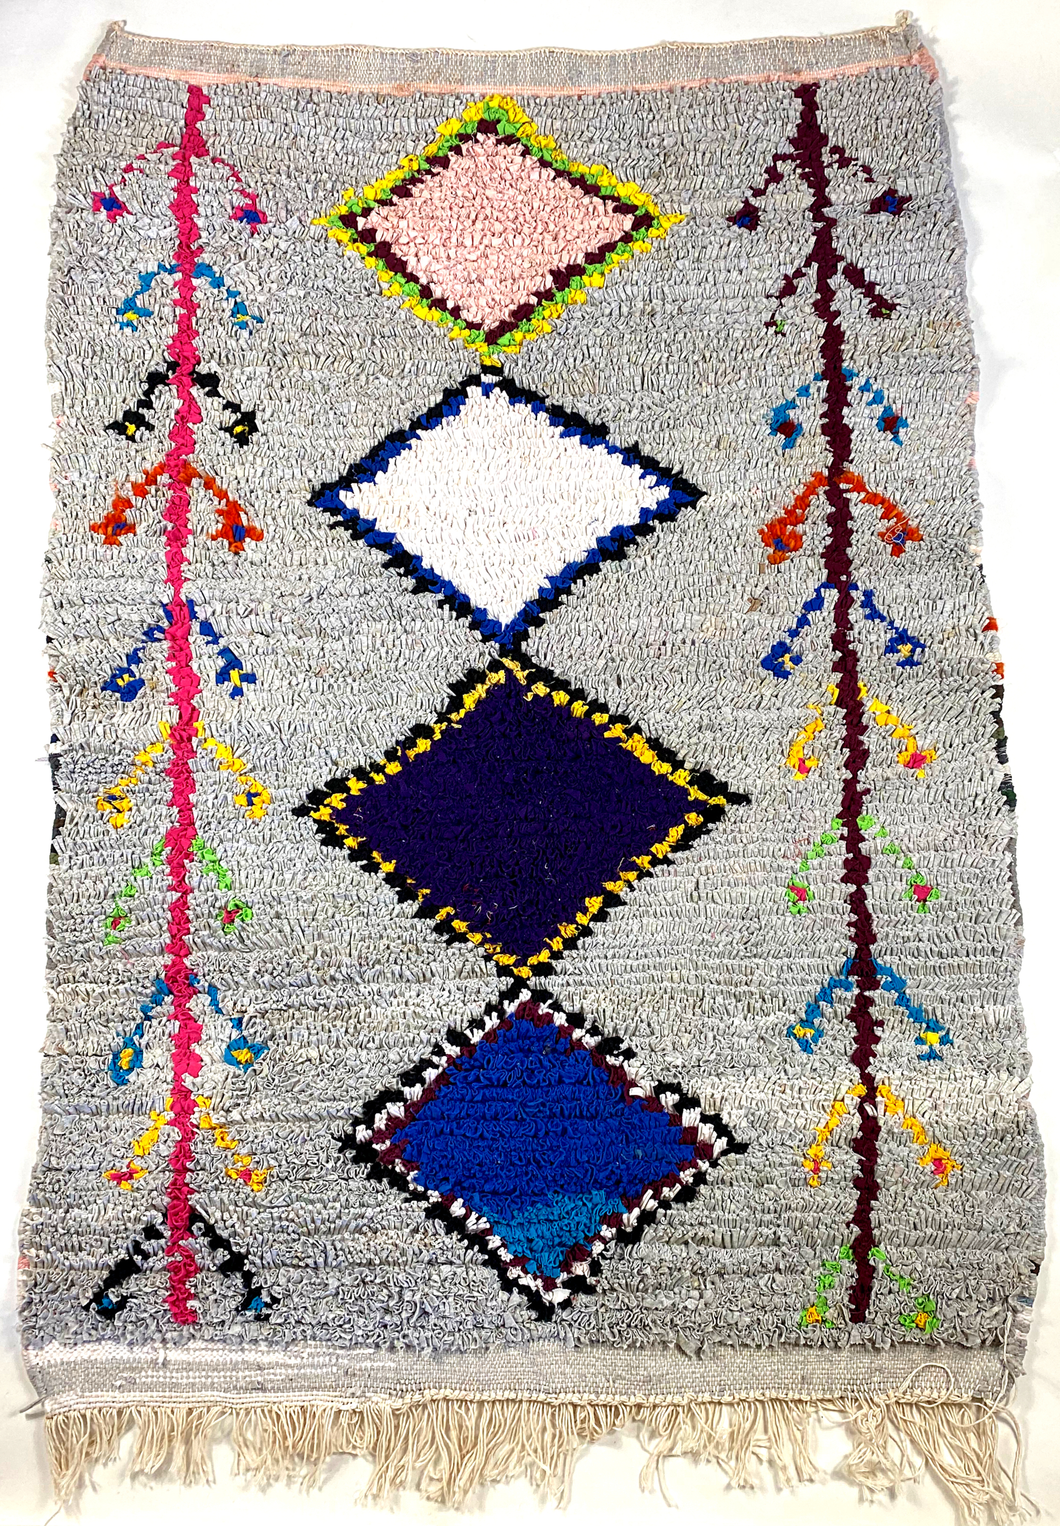 Colorful Moroccan Boucherouite Rug - 4'10